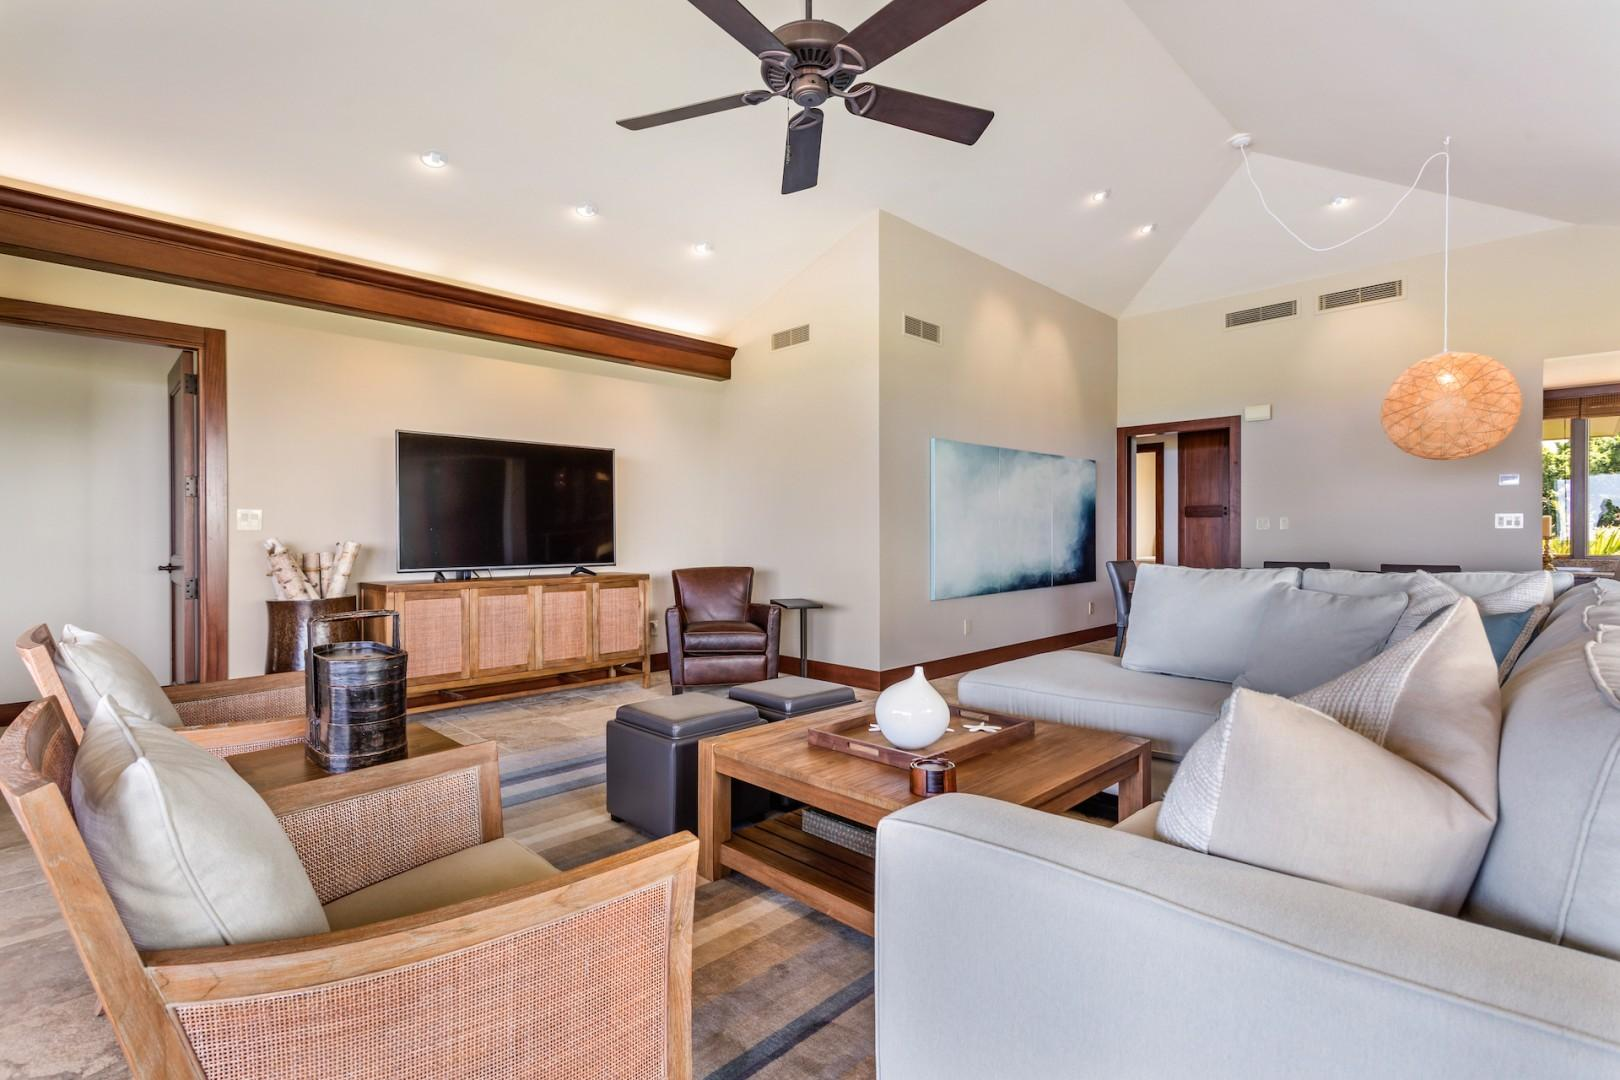 Vaulted ceilings and recessed lighting in the spacious living area.